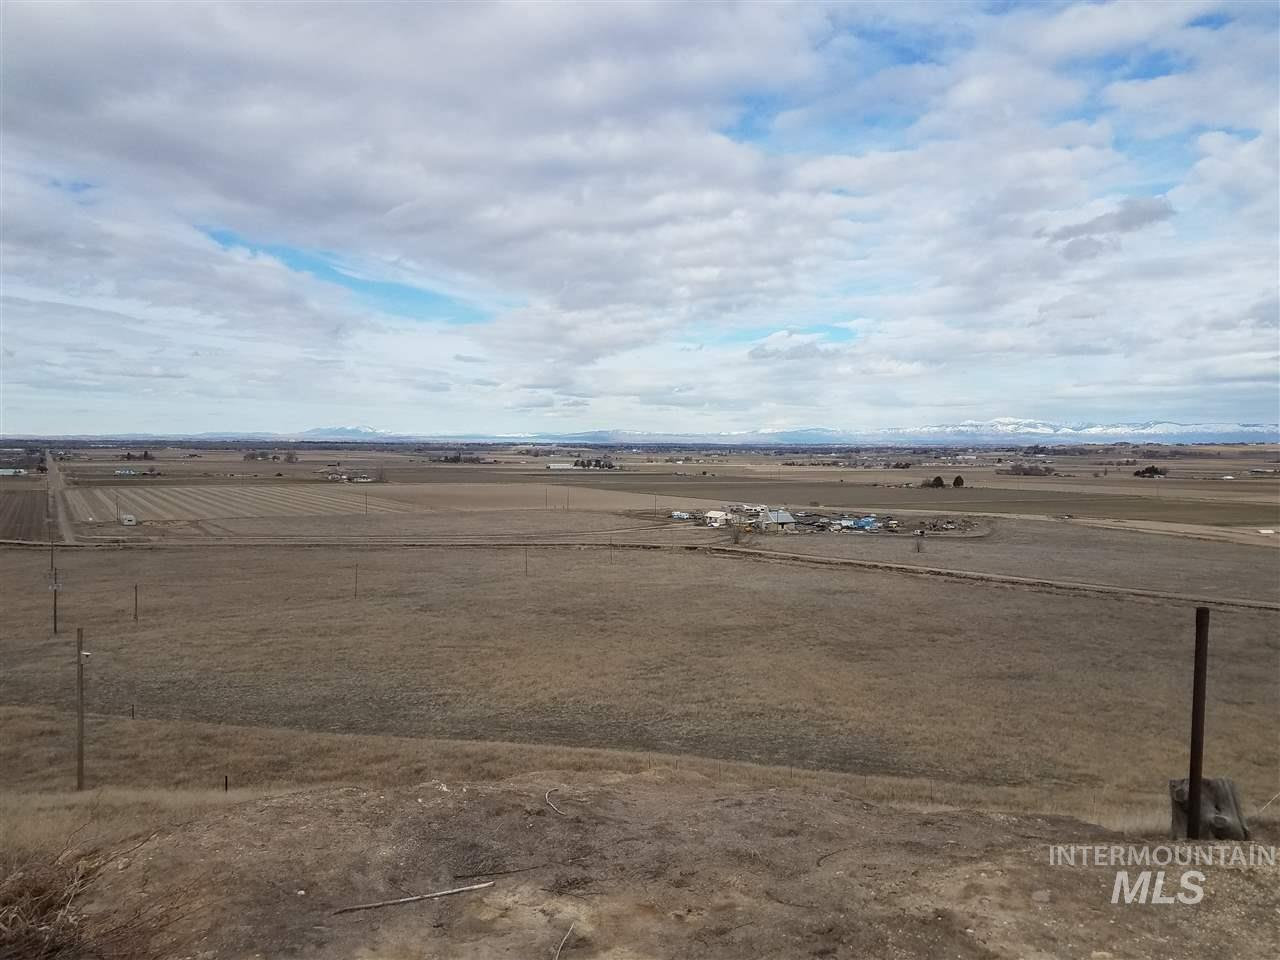 TBD Harlan, Nampa, Idaho 83686, Land For Sale, Price $59,000, 98721500